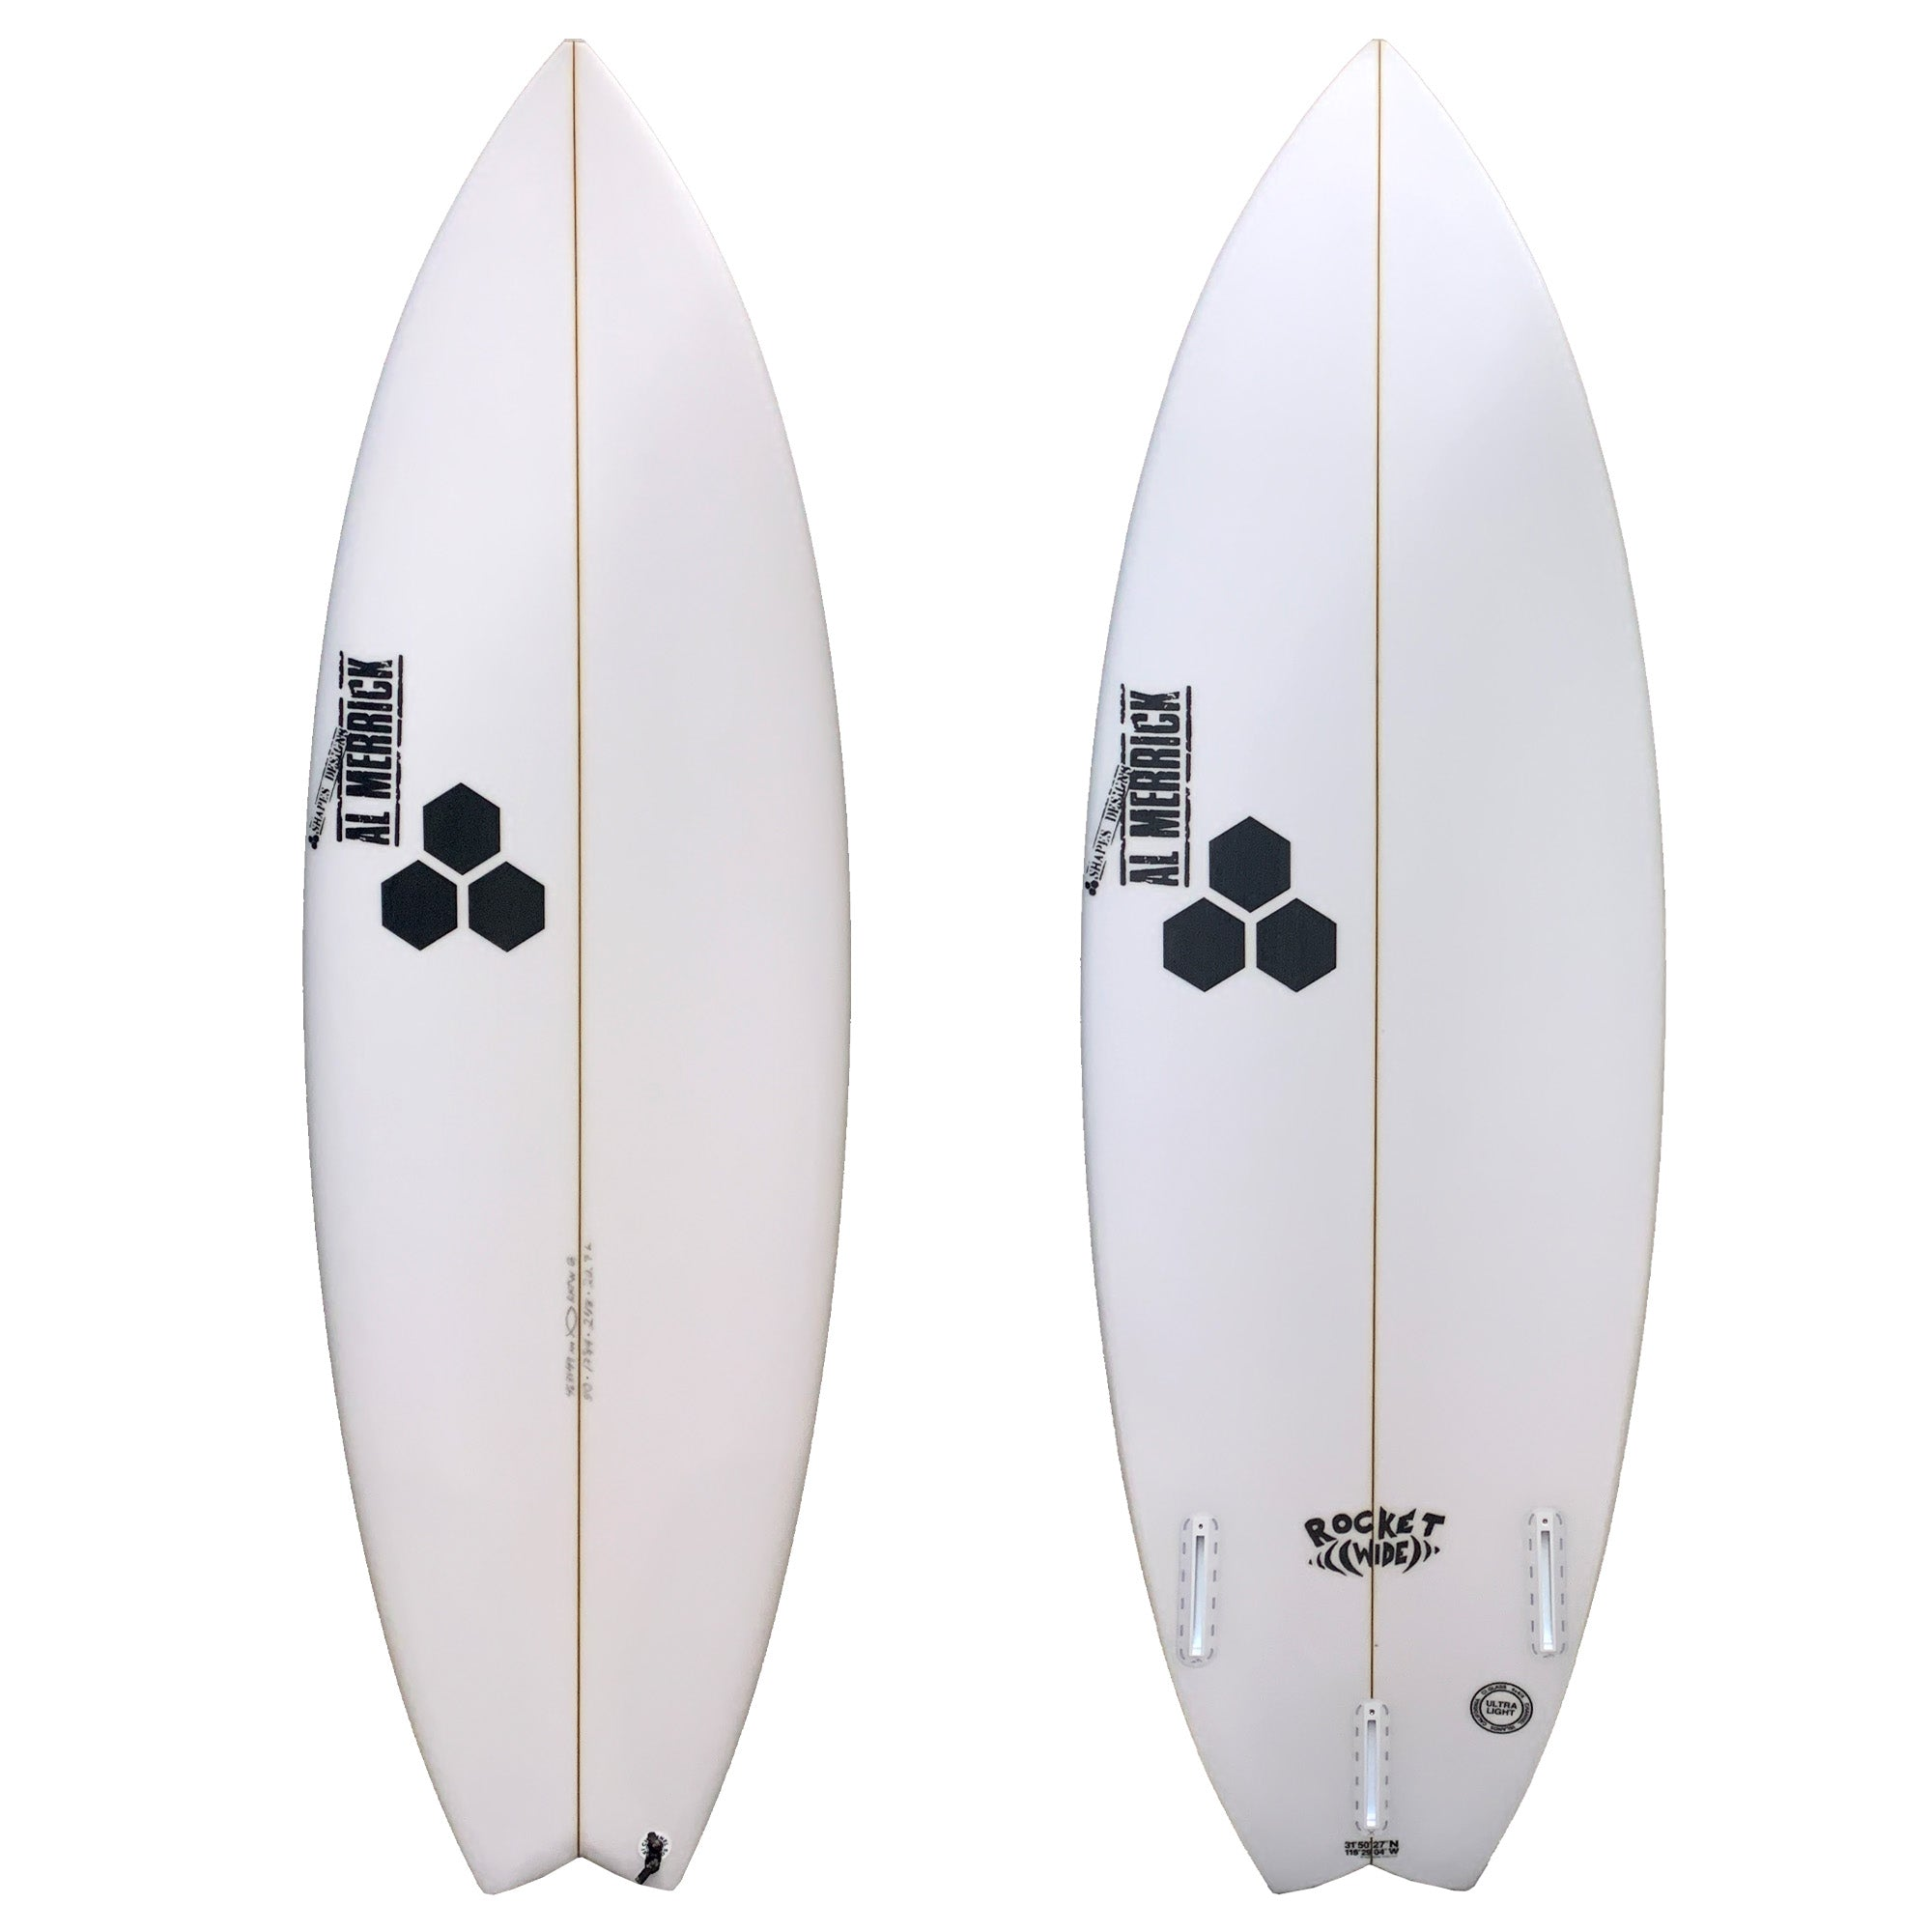 Channel Islands Rocket Wide Grom Series Surfboard - Futures